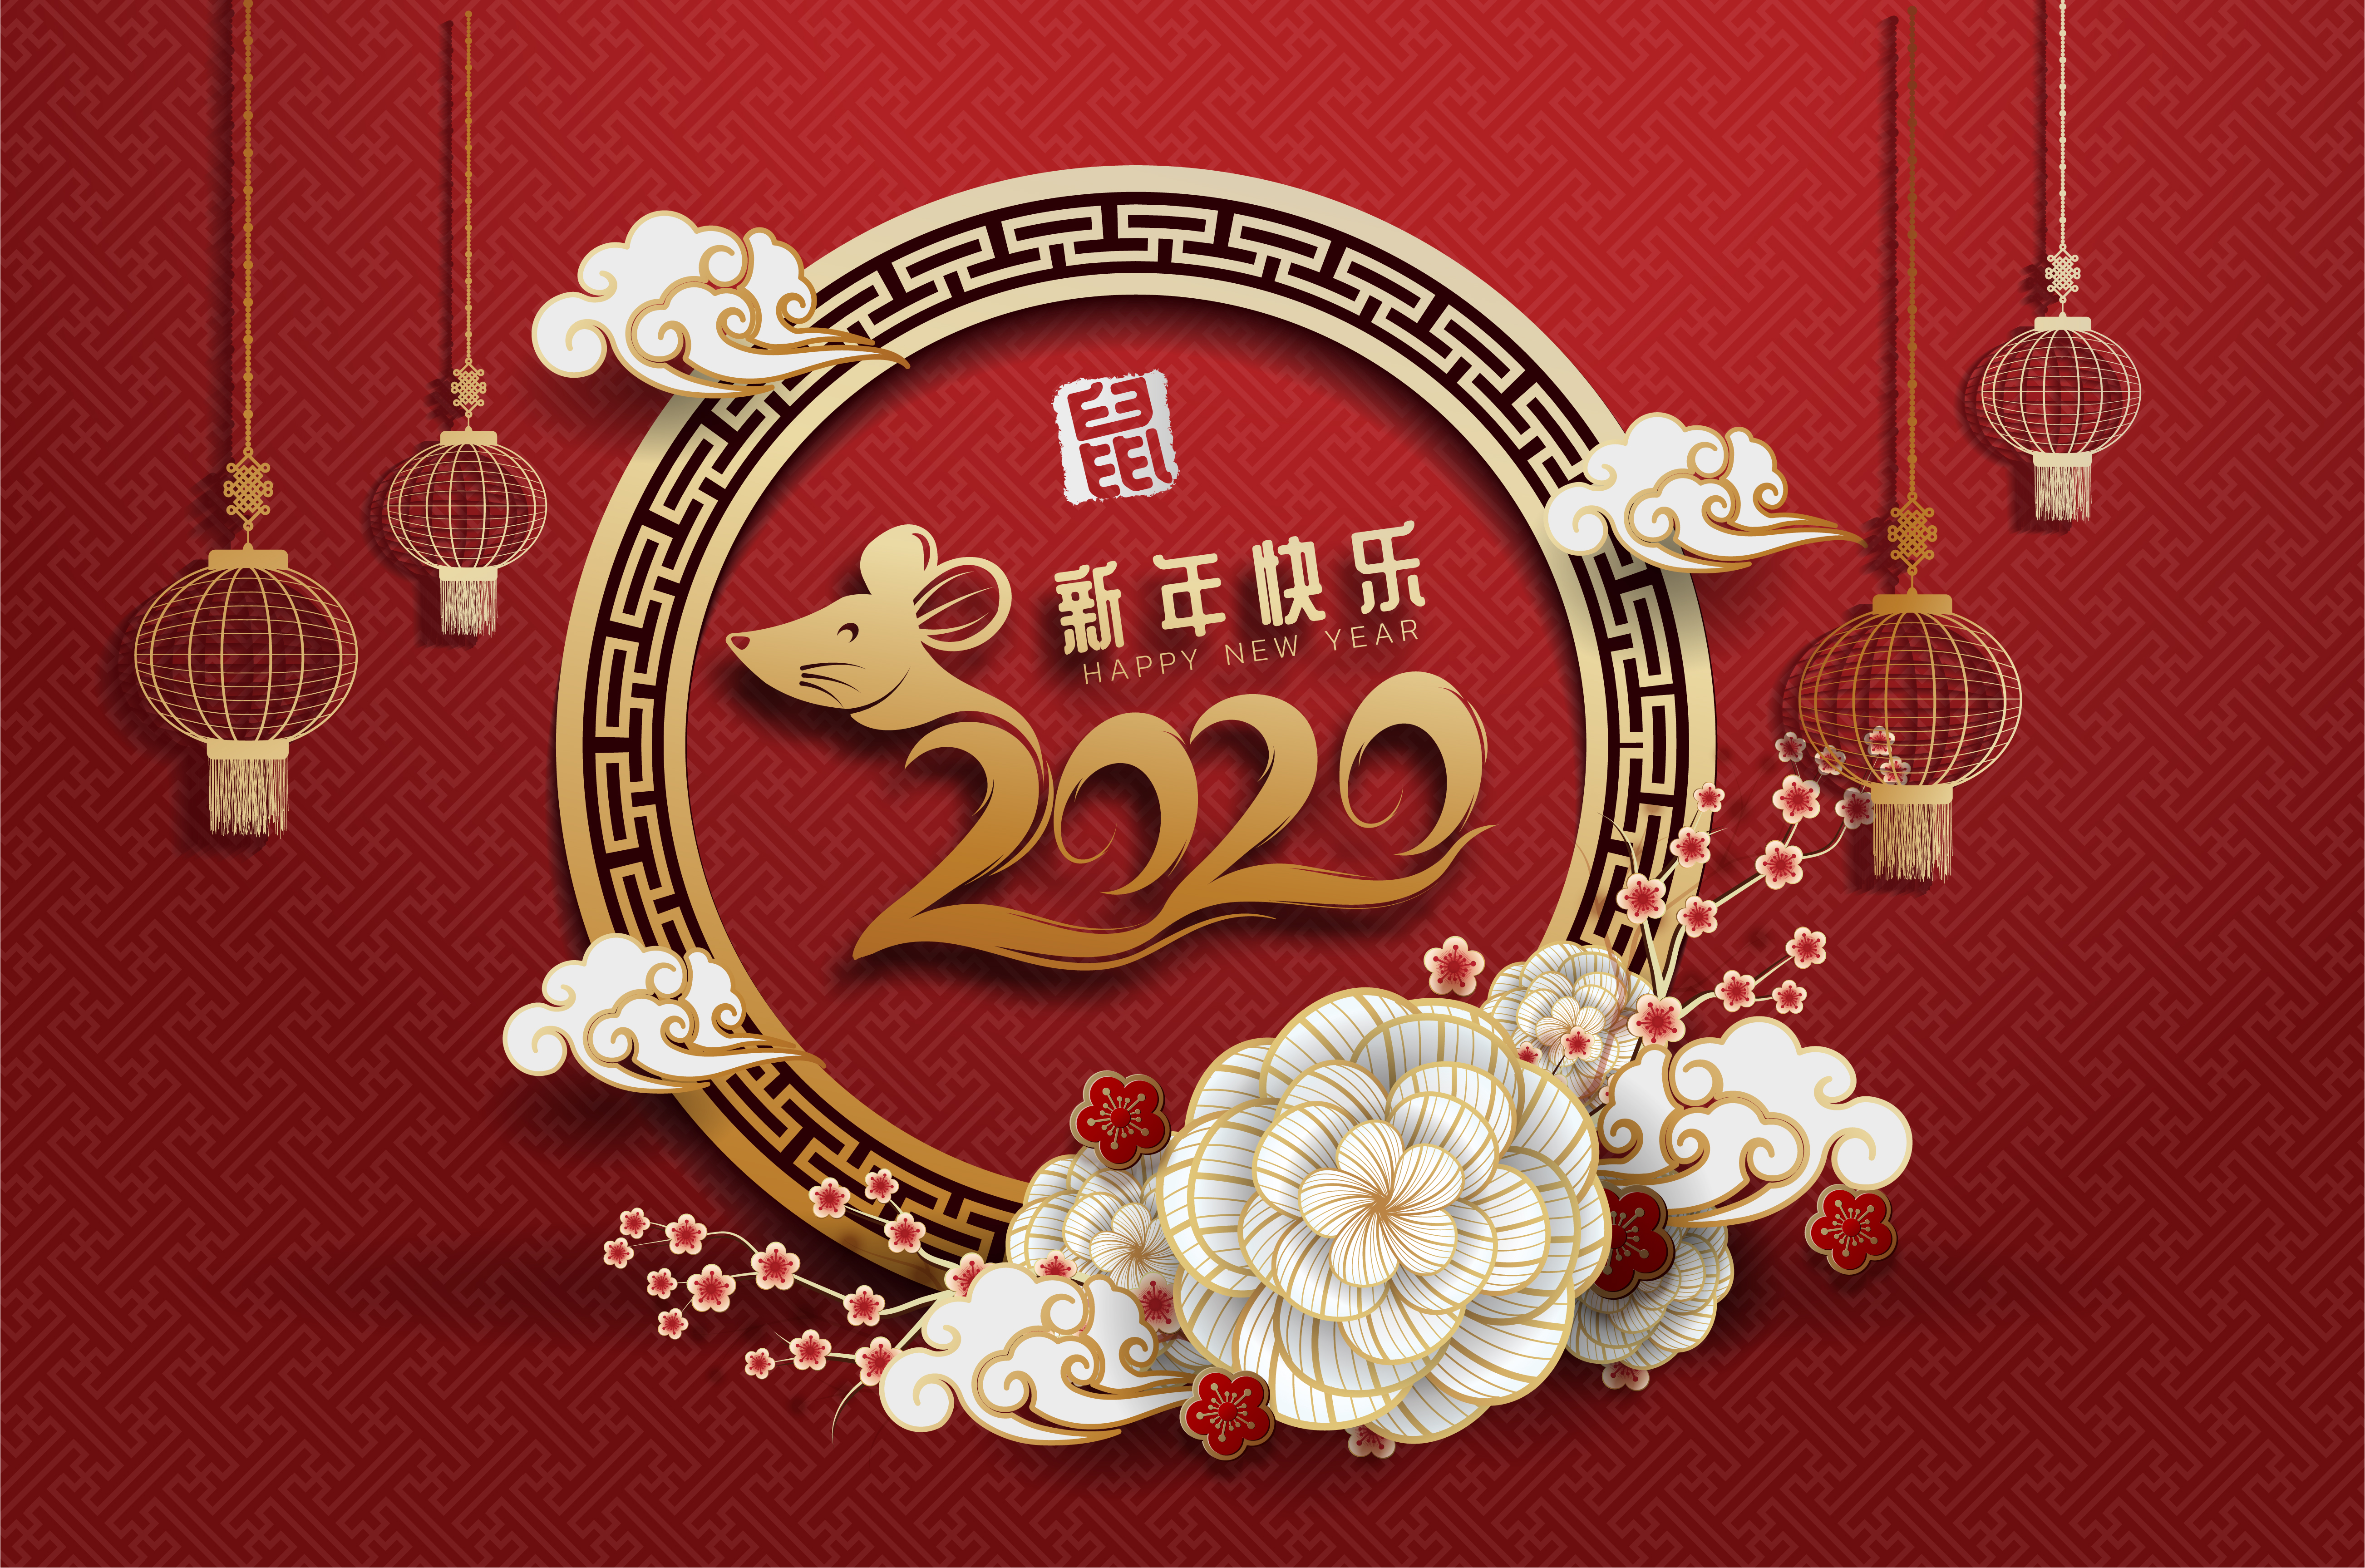 2020 Chinese New Year Greeting Card - Download Free ...